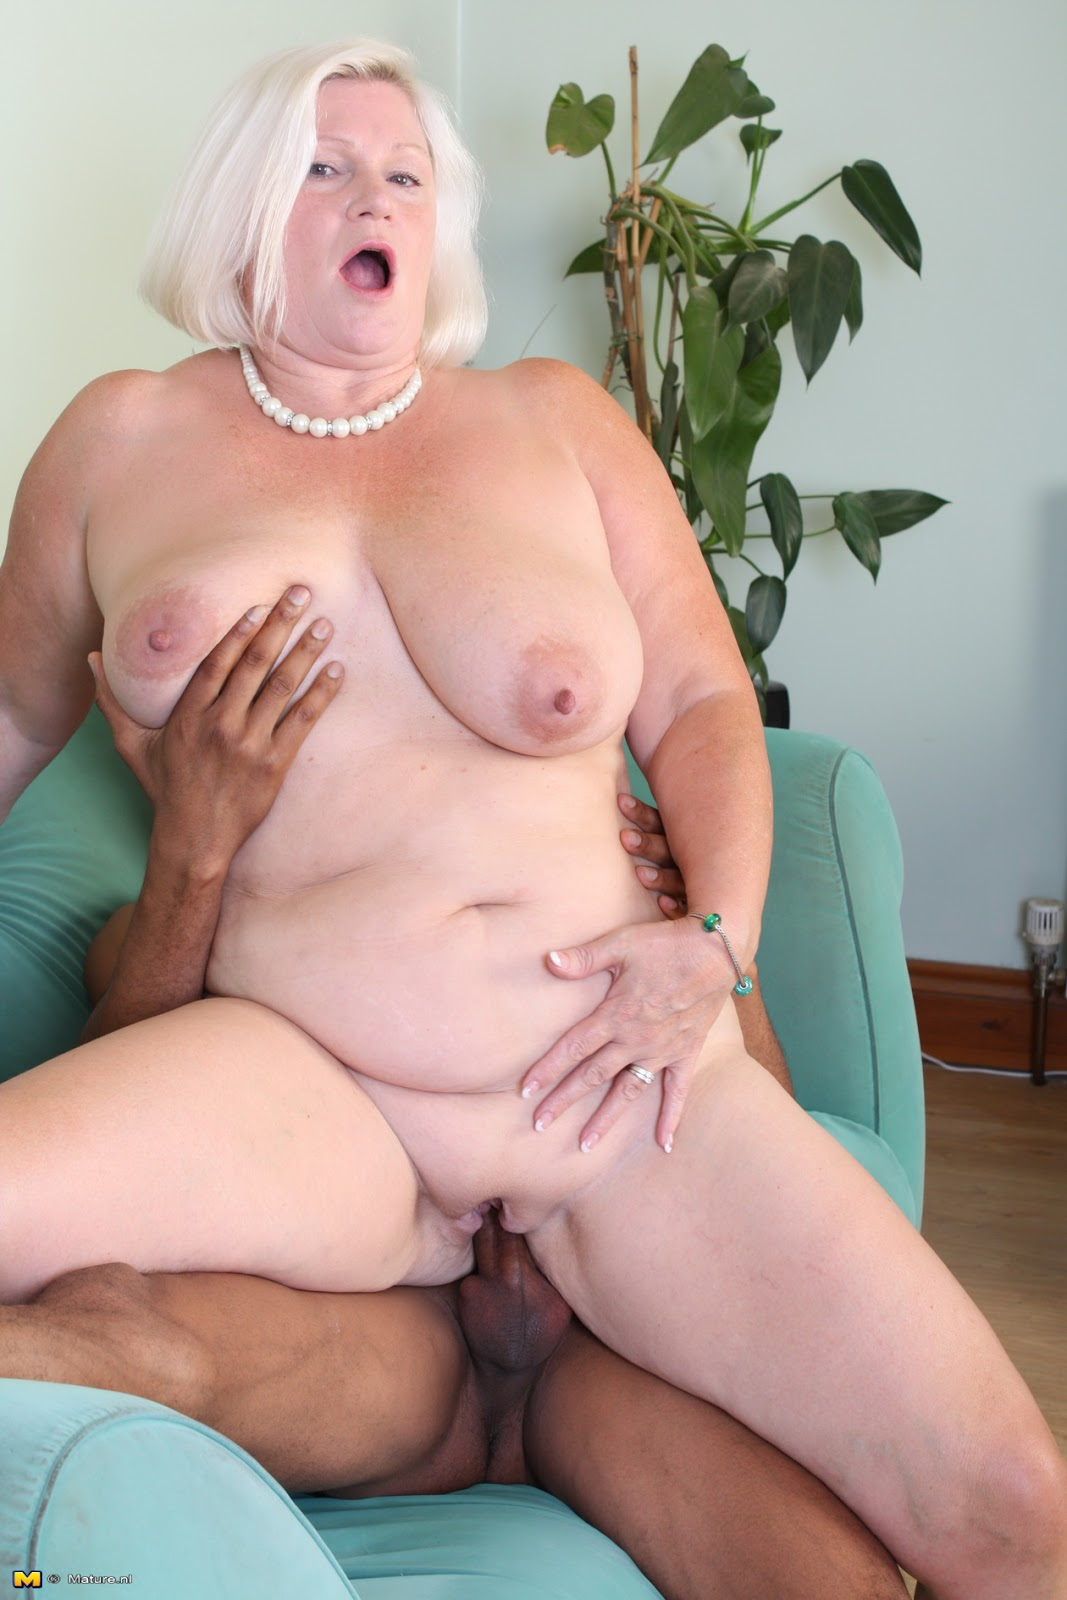 Older Woman Sucking Big Dick